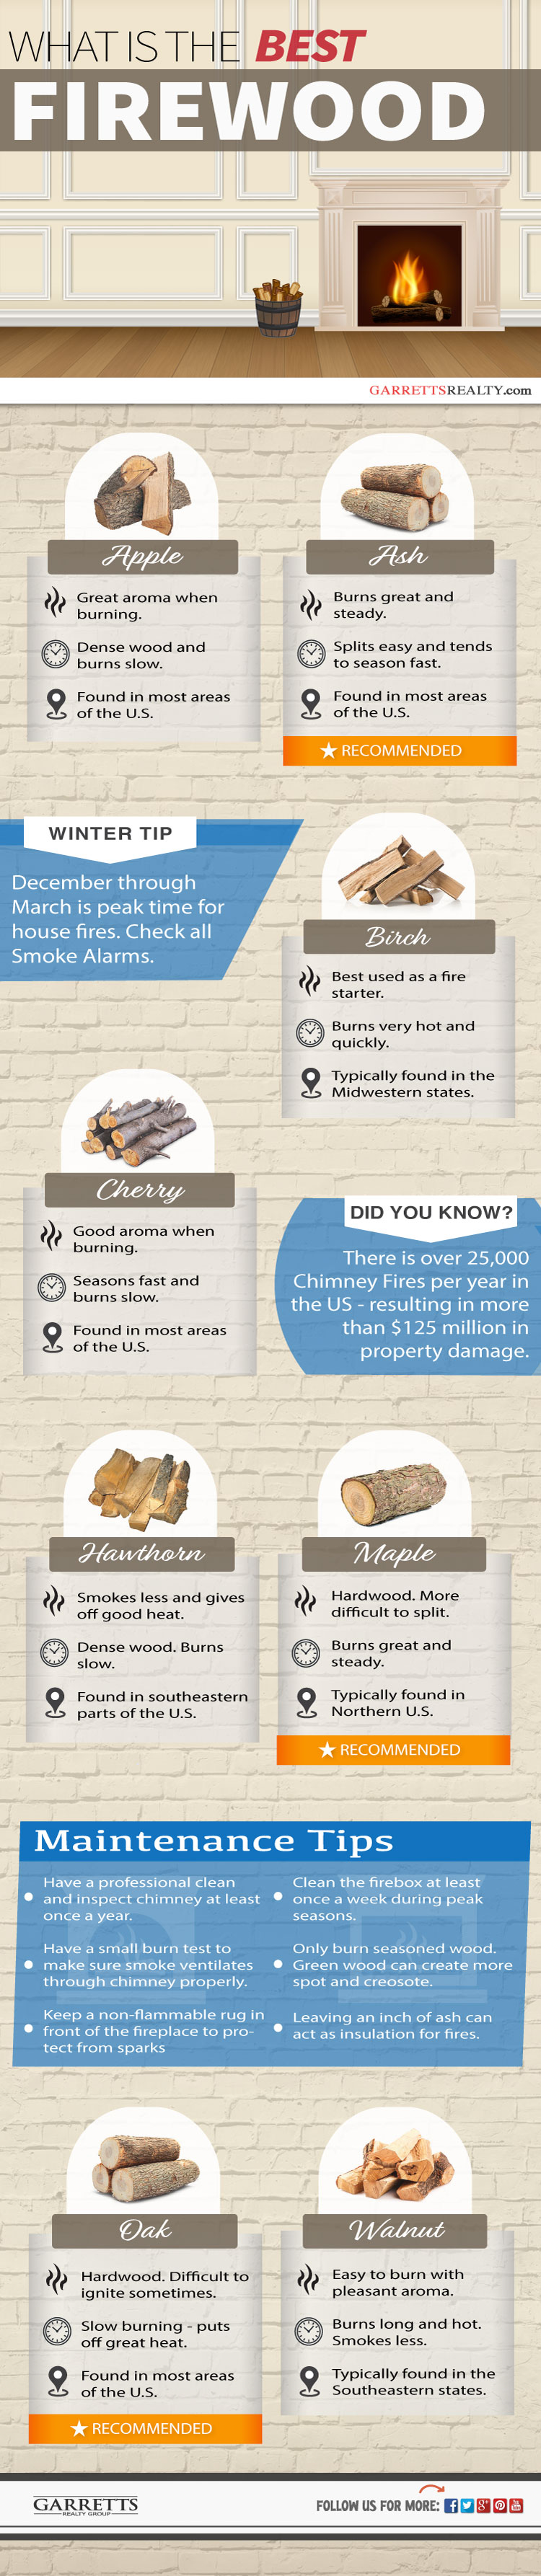 best types of firewood - Infographic.